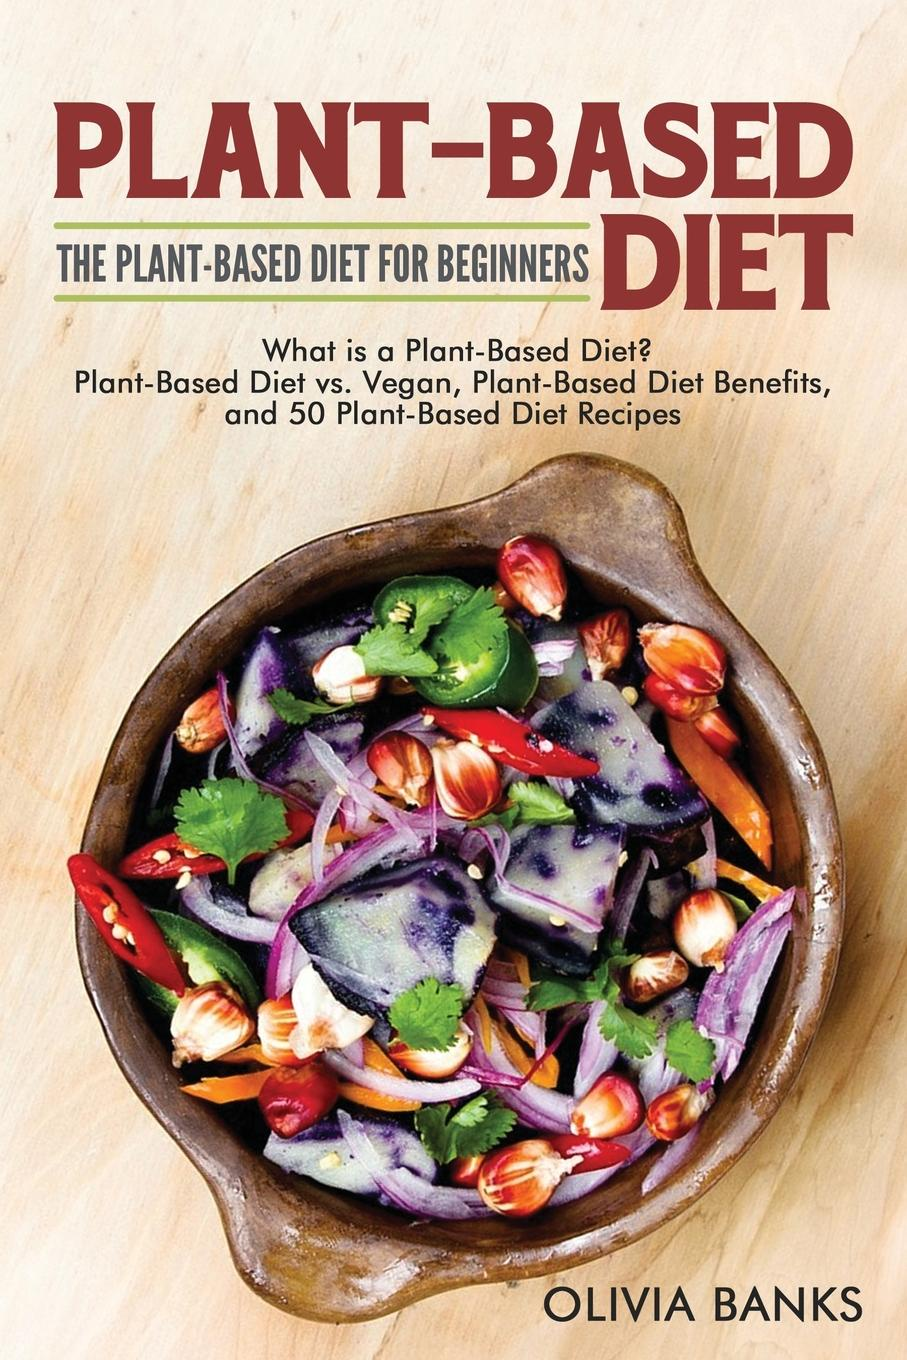 Olivia Banks Plant-Based Diet. The Plant-Based Diet for Beginners: What is a Plant-Based Diet. Plant-Based Diet vs. Vegan, Plant-Based Diet Benefits, and 50 Plant-Based Diet Recipes polystyrene based block copolymers and blends